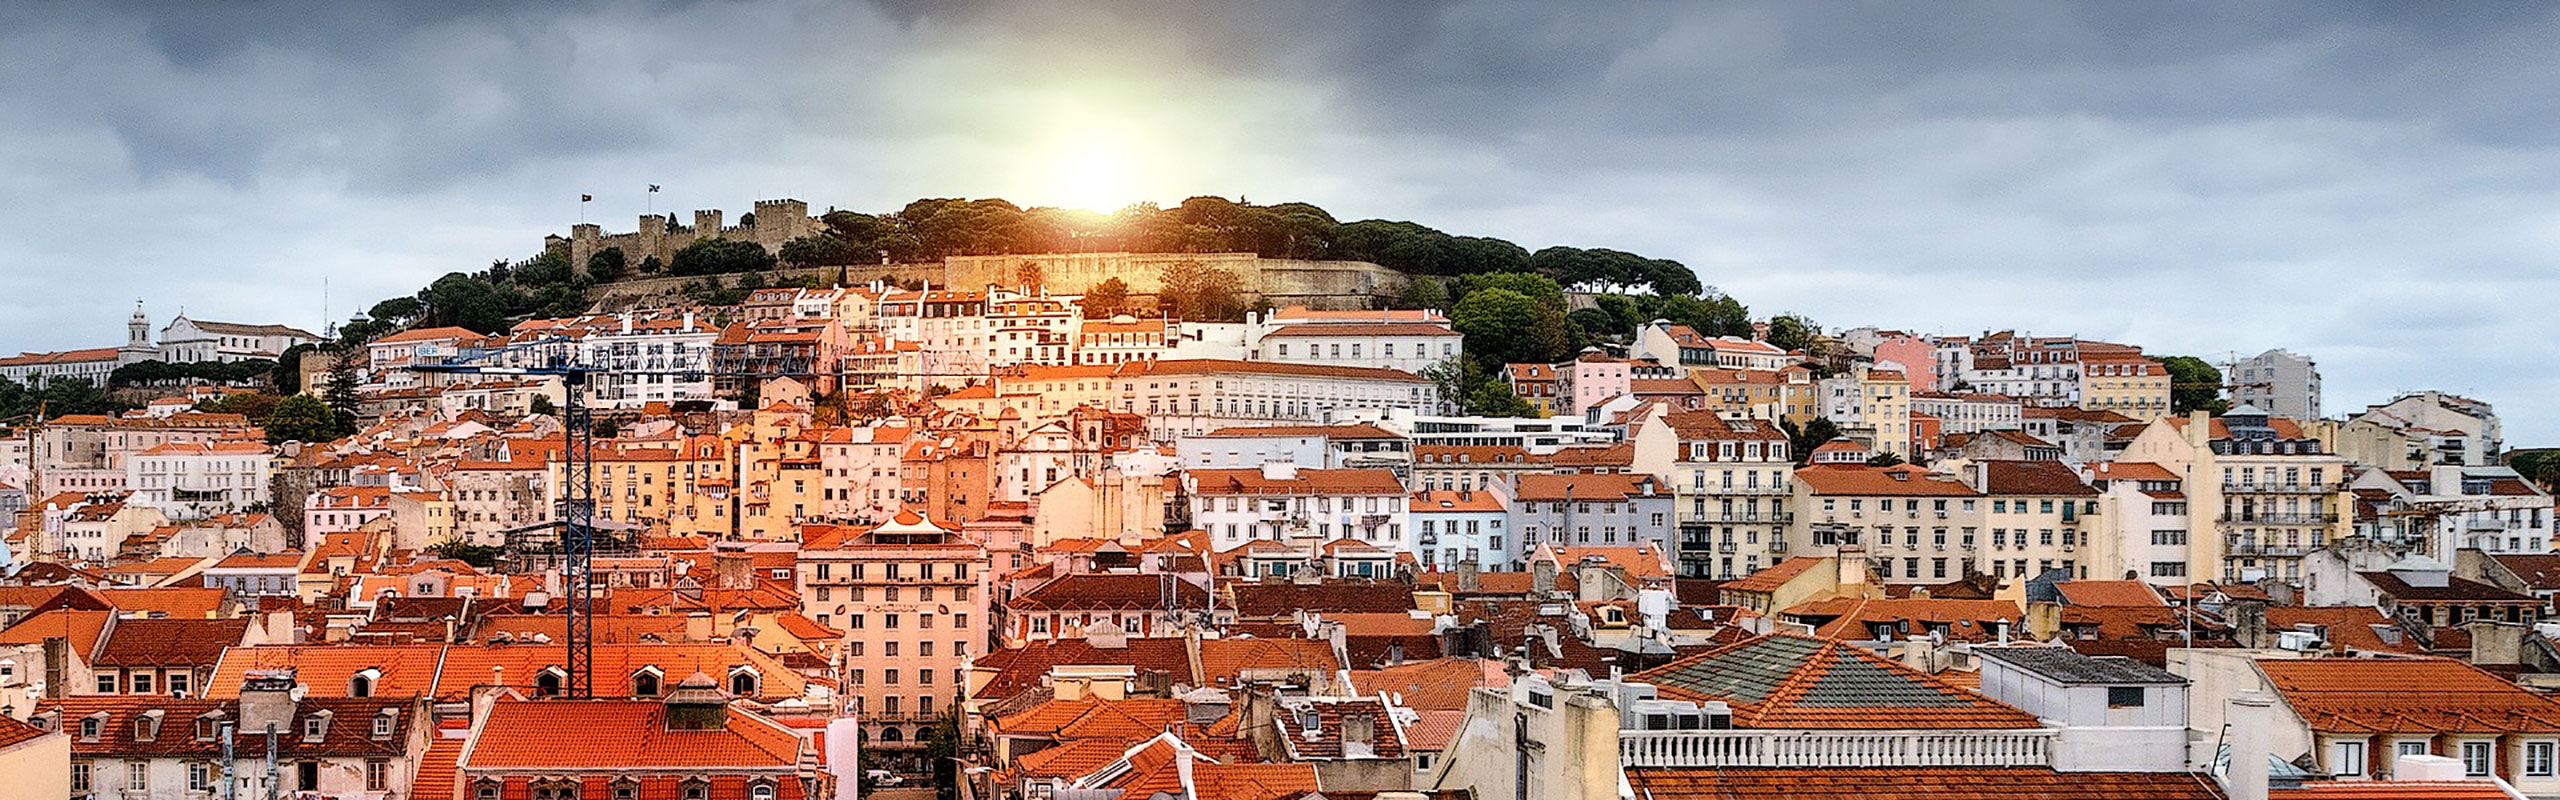 Panoramic view overlooking terracotta houses in Lisbon